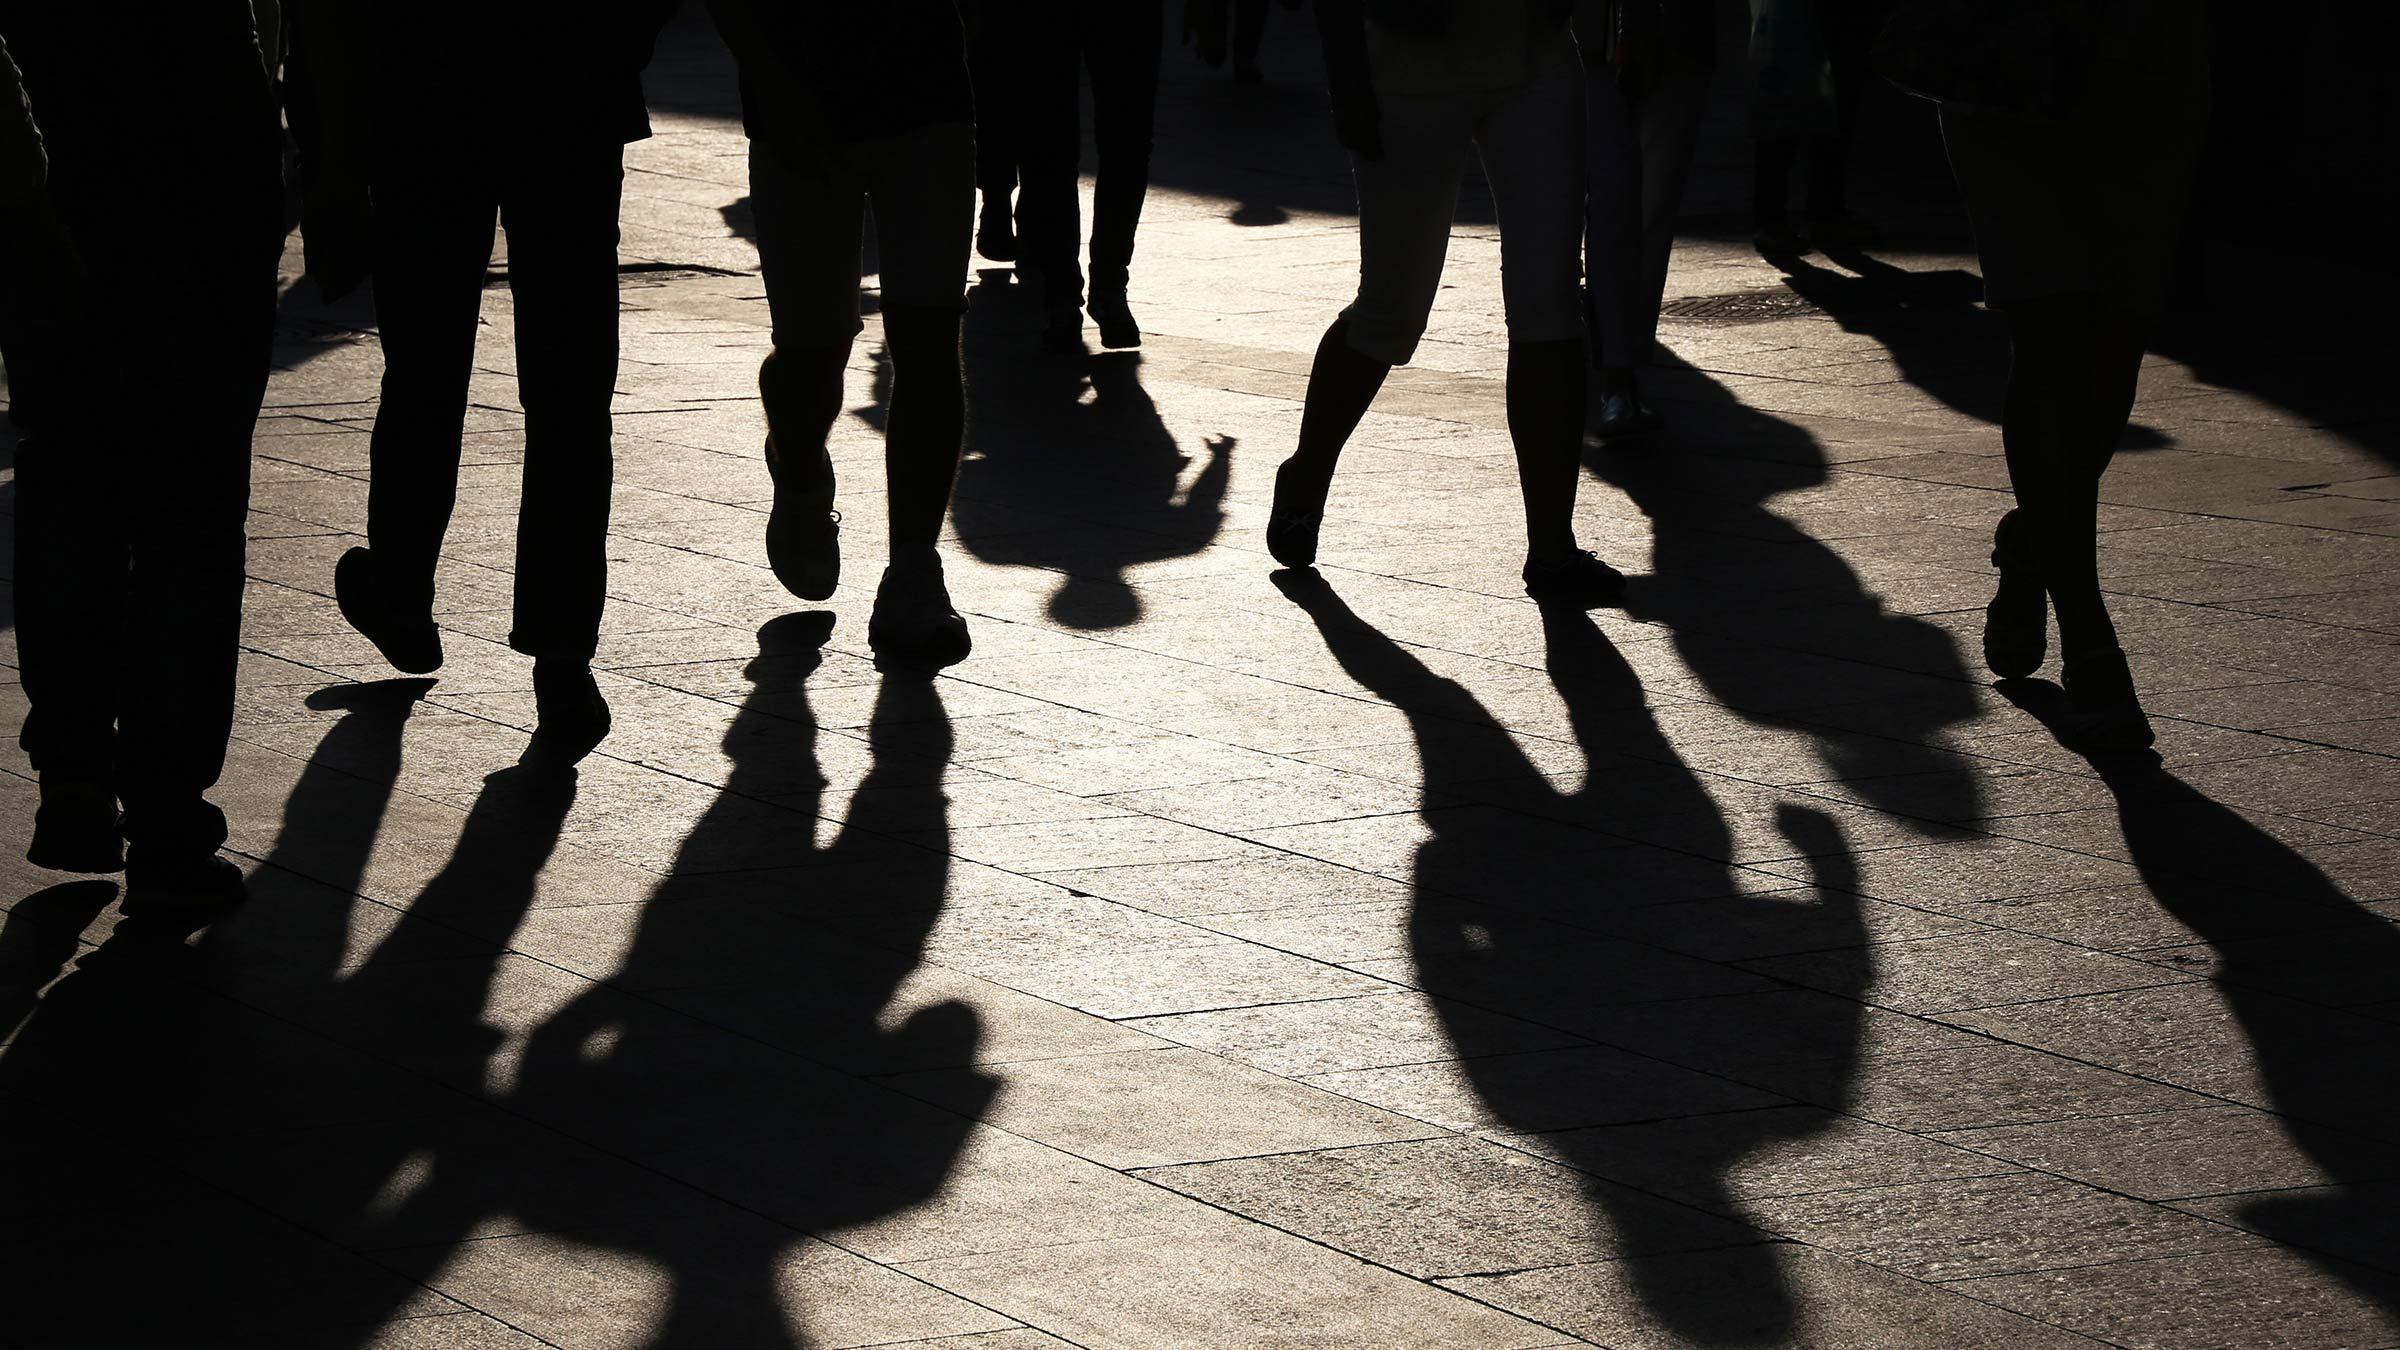 Coronavirus sufferers remain in data shadows key image